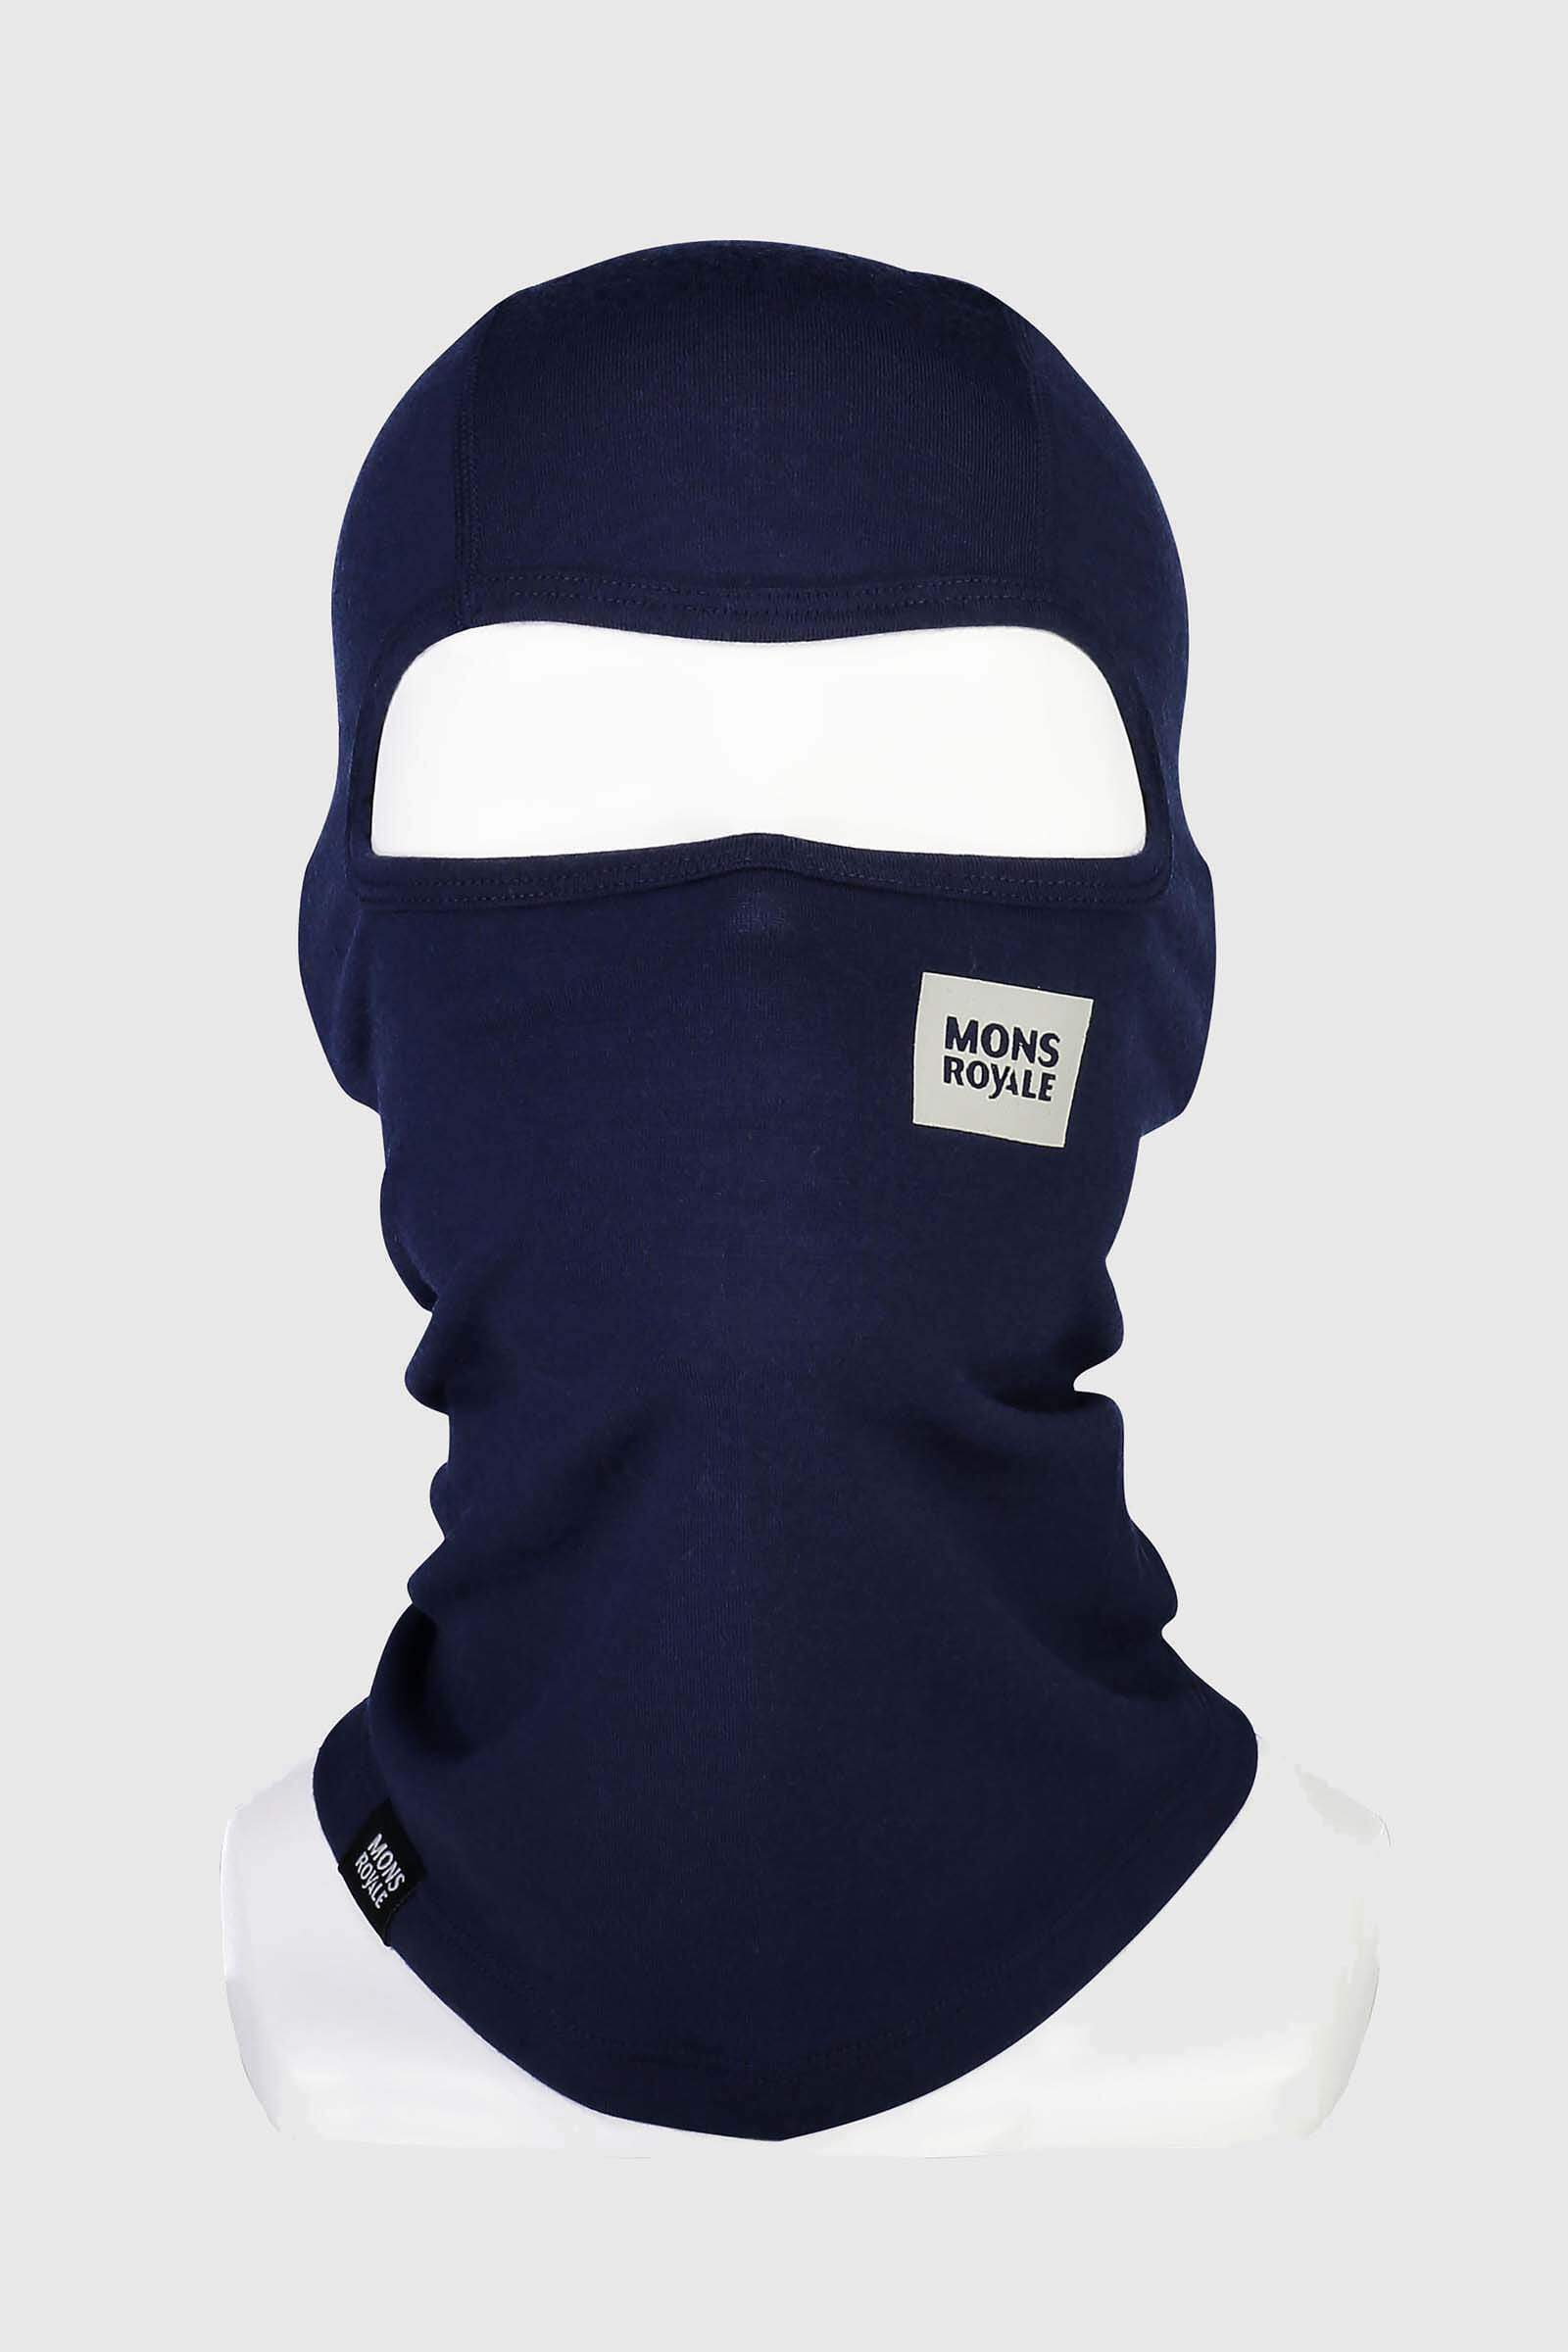 Cold Days Balaclava - Navy